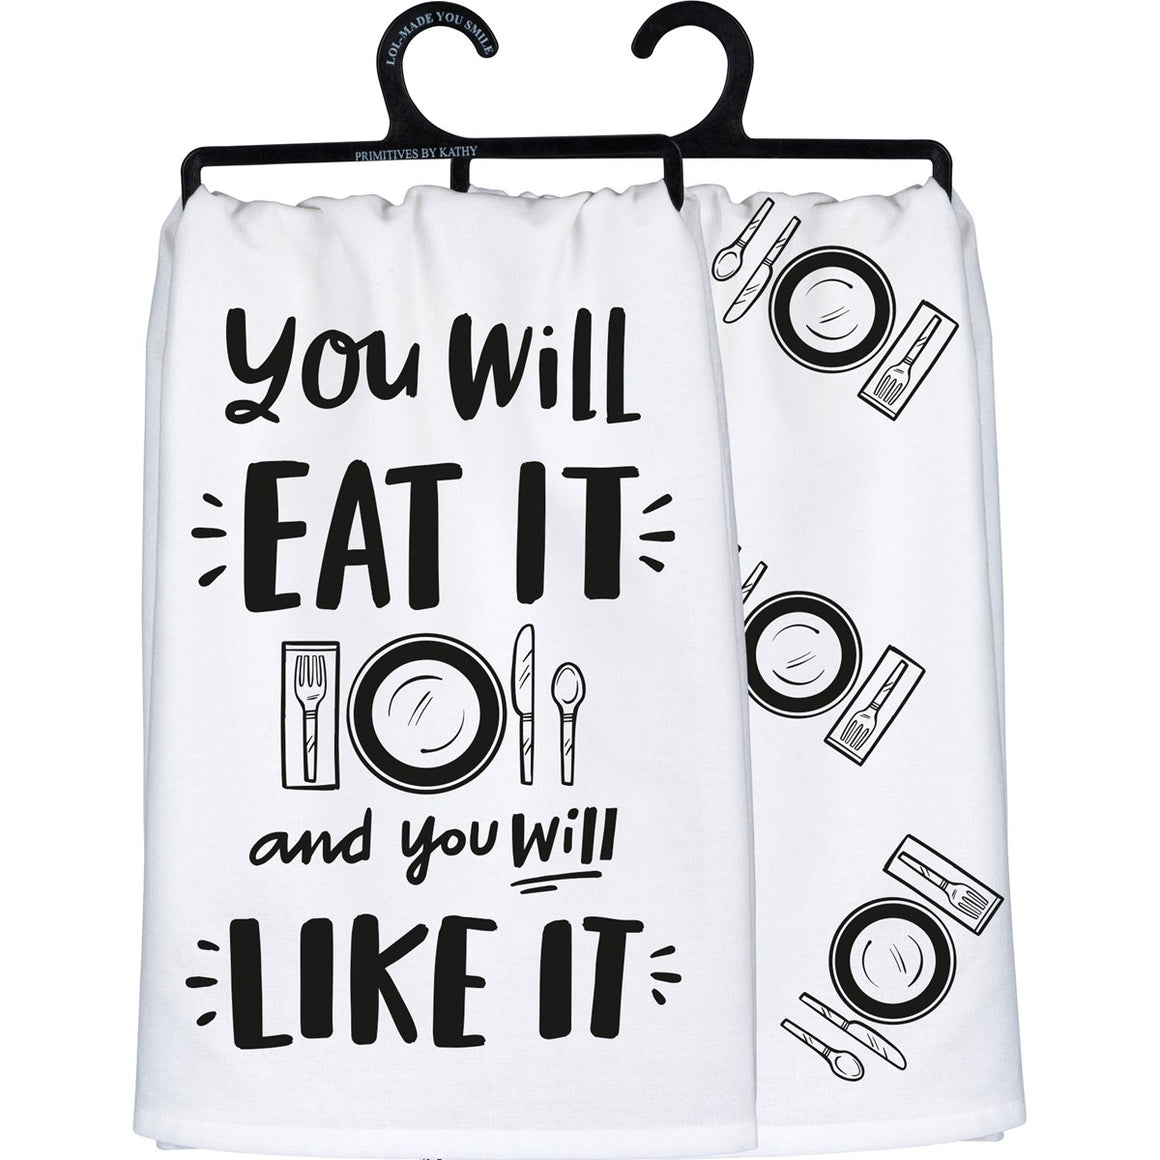 You Will Eat It And You Will Like It - Dish Towel